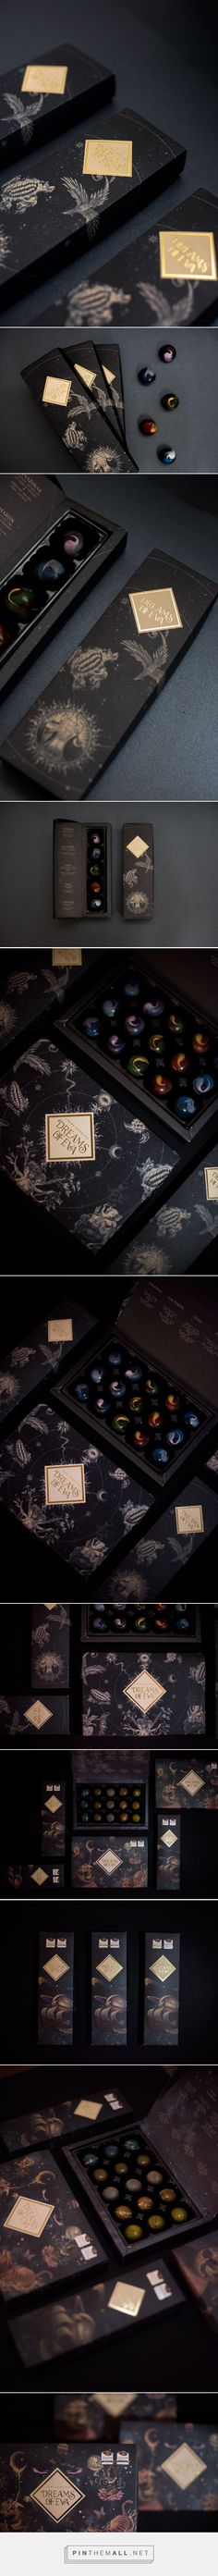 Dreams of Eva Chocolate, Fivestar Branding – Design and Branding Agency & Inspiration Gallery Luxury Packaging, Brand Packaging, Design Packaging, Foil Packaging, Coffee Packaging, Bottle Packaging, Packaging Design Inspiration, Graphic Design Inspiration, Design Ideas